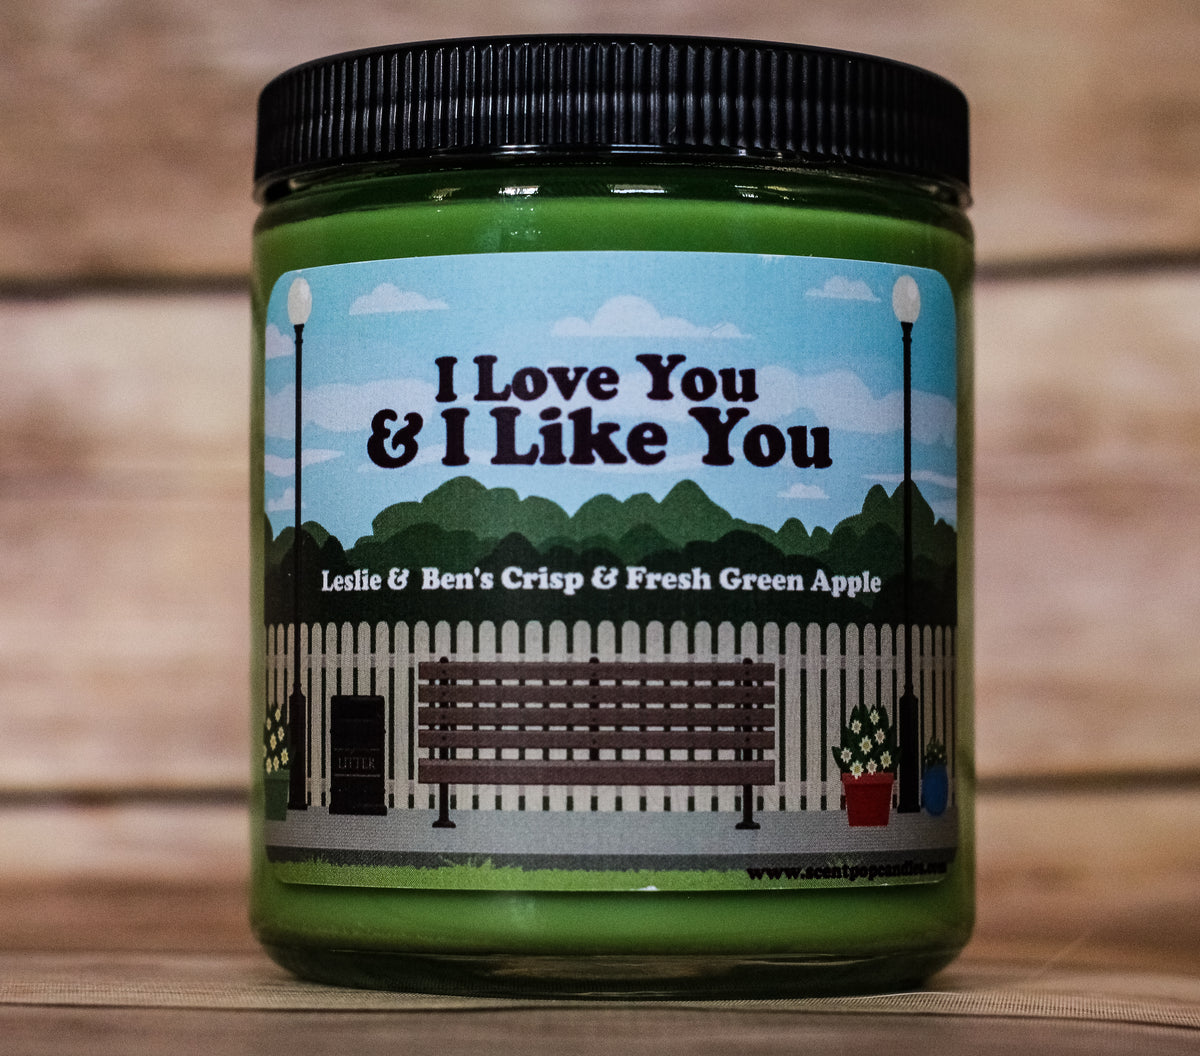 I Love You and I Like You, Leslie Knope, Ben Wyatt, Parks & Recreation Inspired Soy Candle